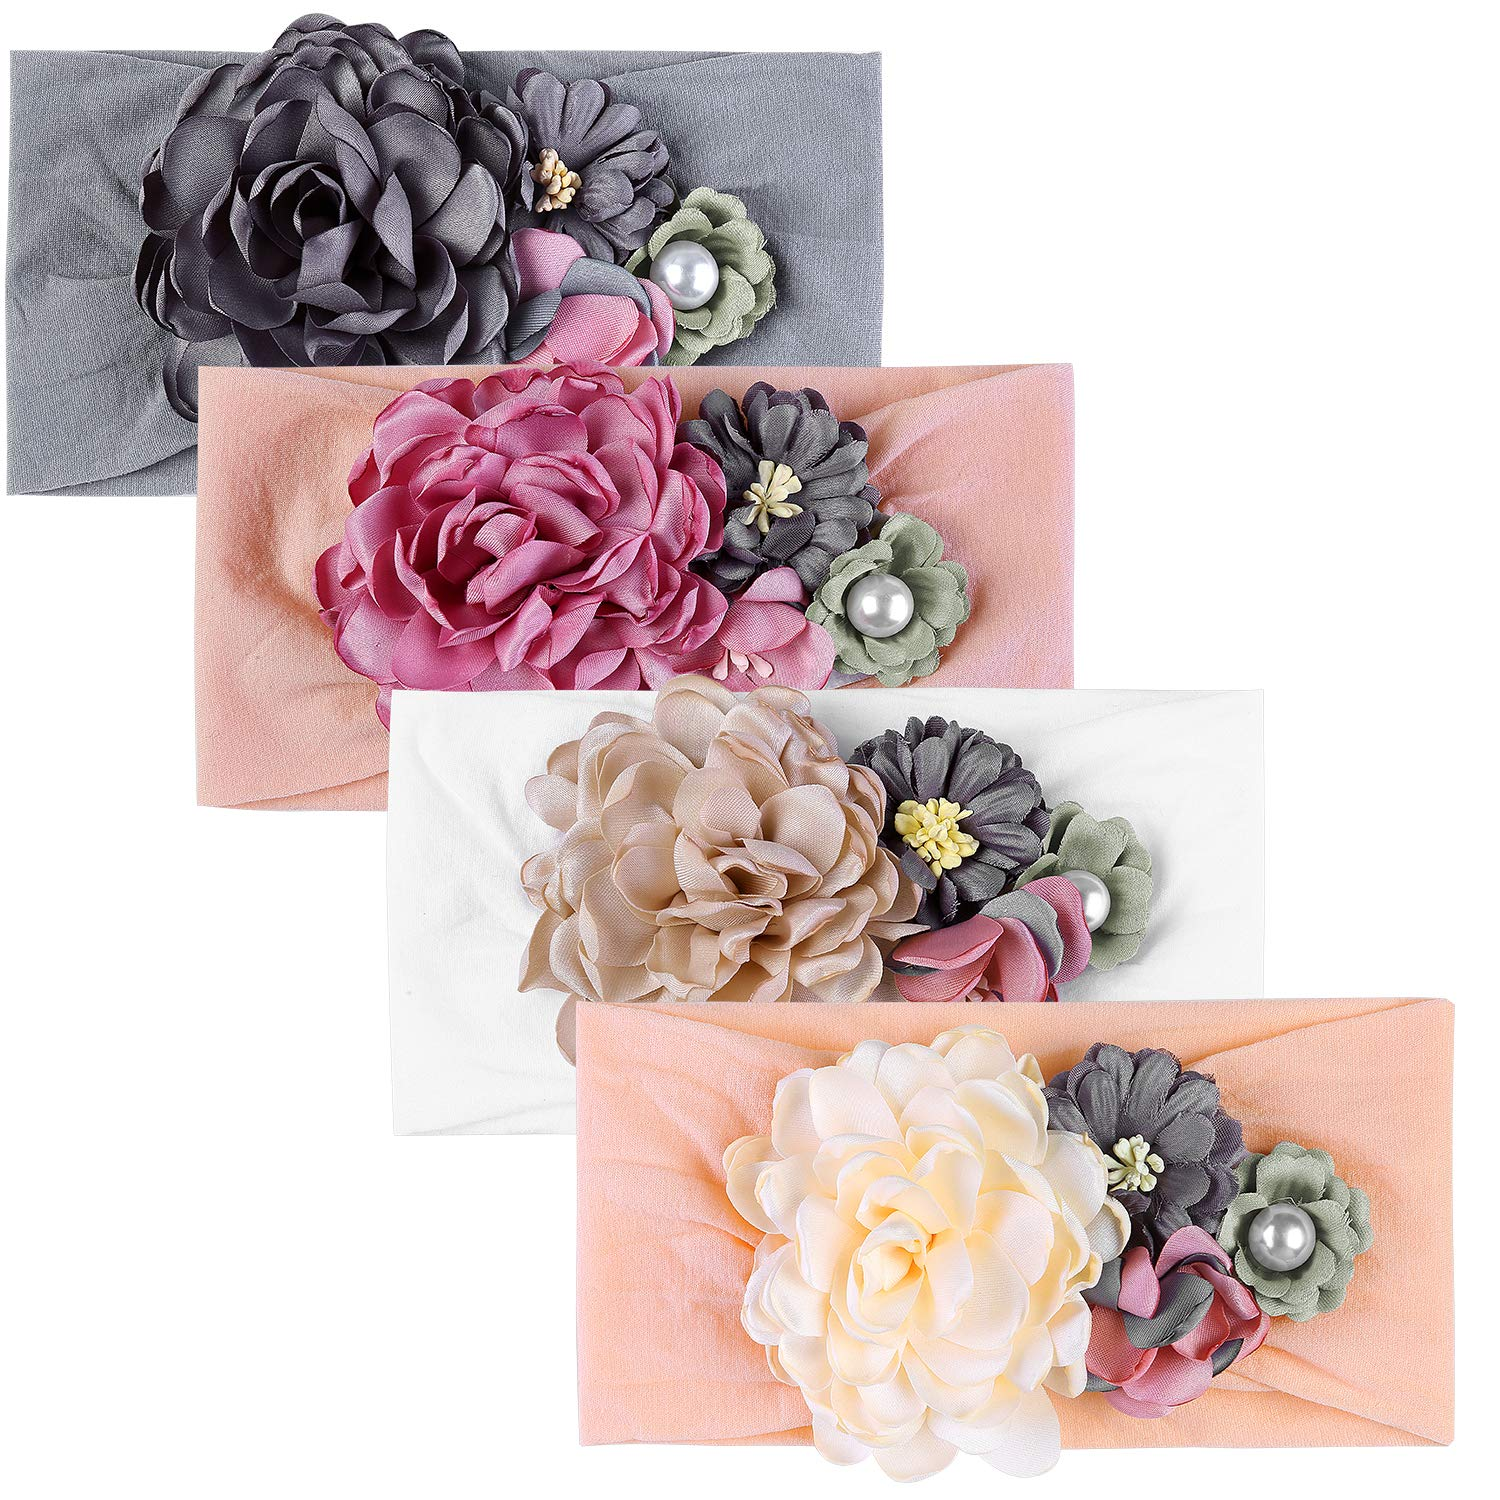 Senbowe Upgrade Stretchy Baby Girl Headbands and Bows, Nylon Floral Big Baby Hair Bows Headband for Infants Newborns Toddlers Kids Hair Accessories